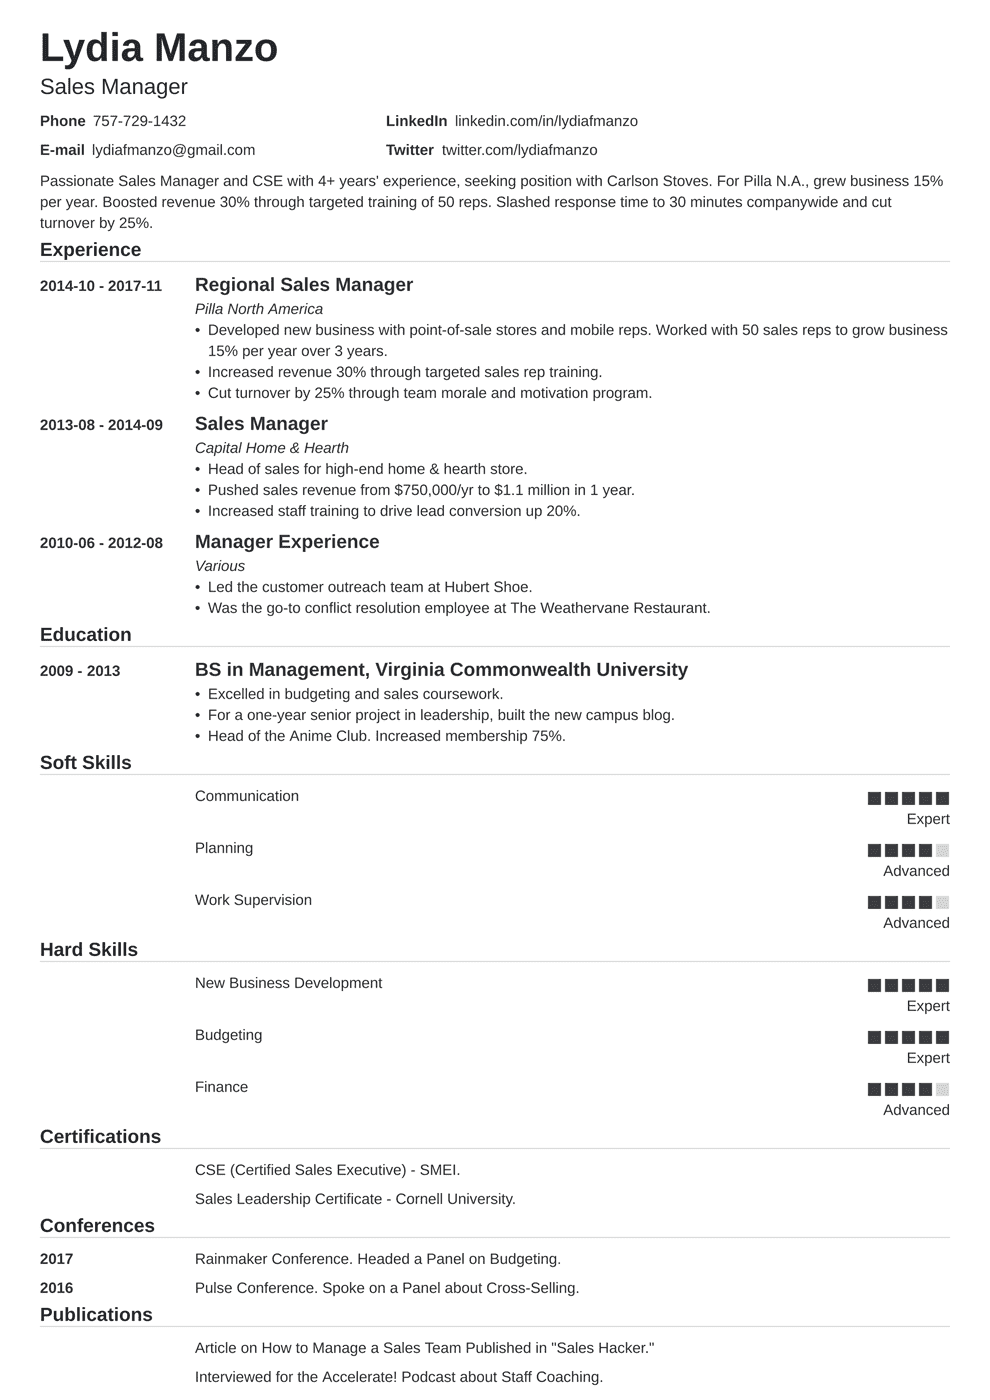 40 Management Resume Examples [Skills, Job Description]